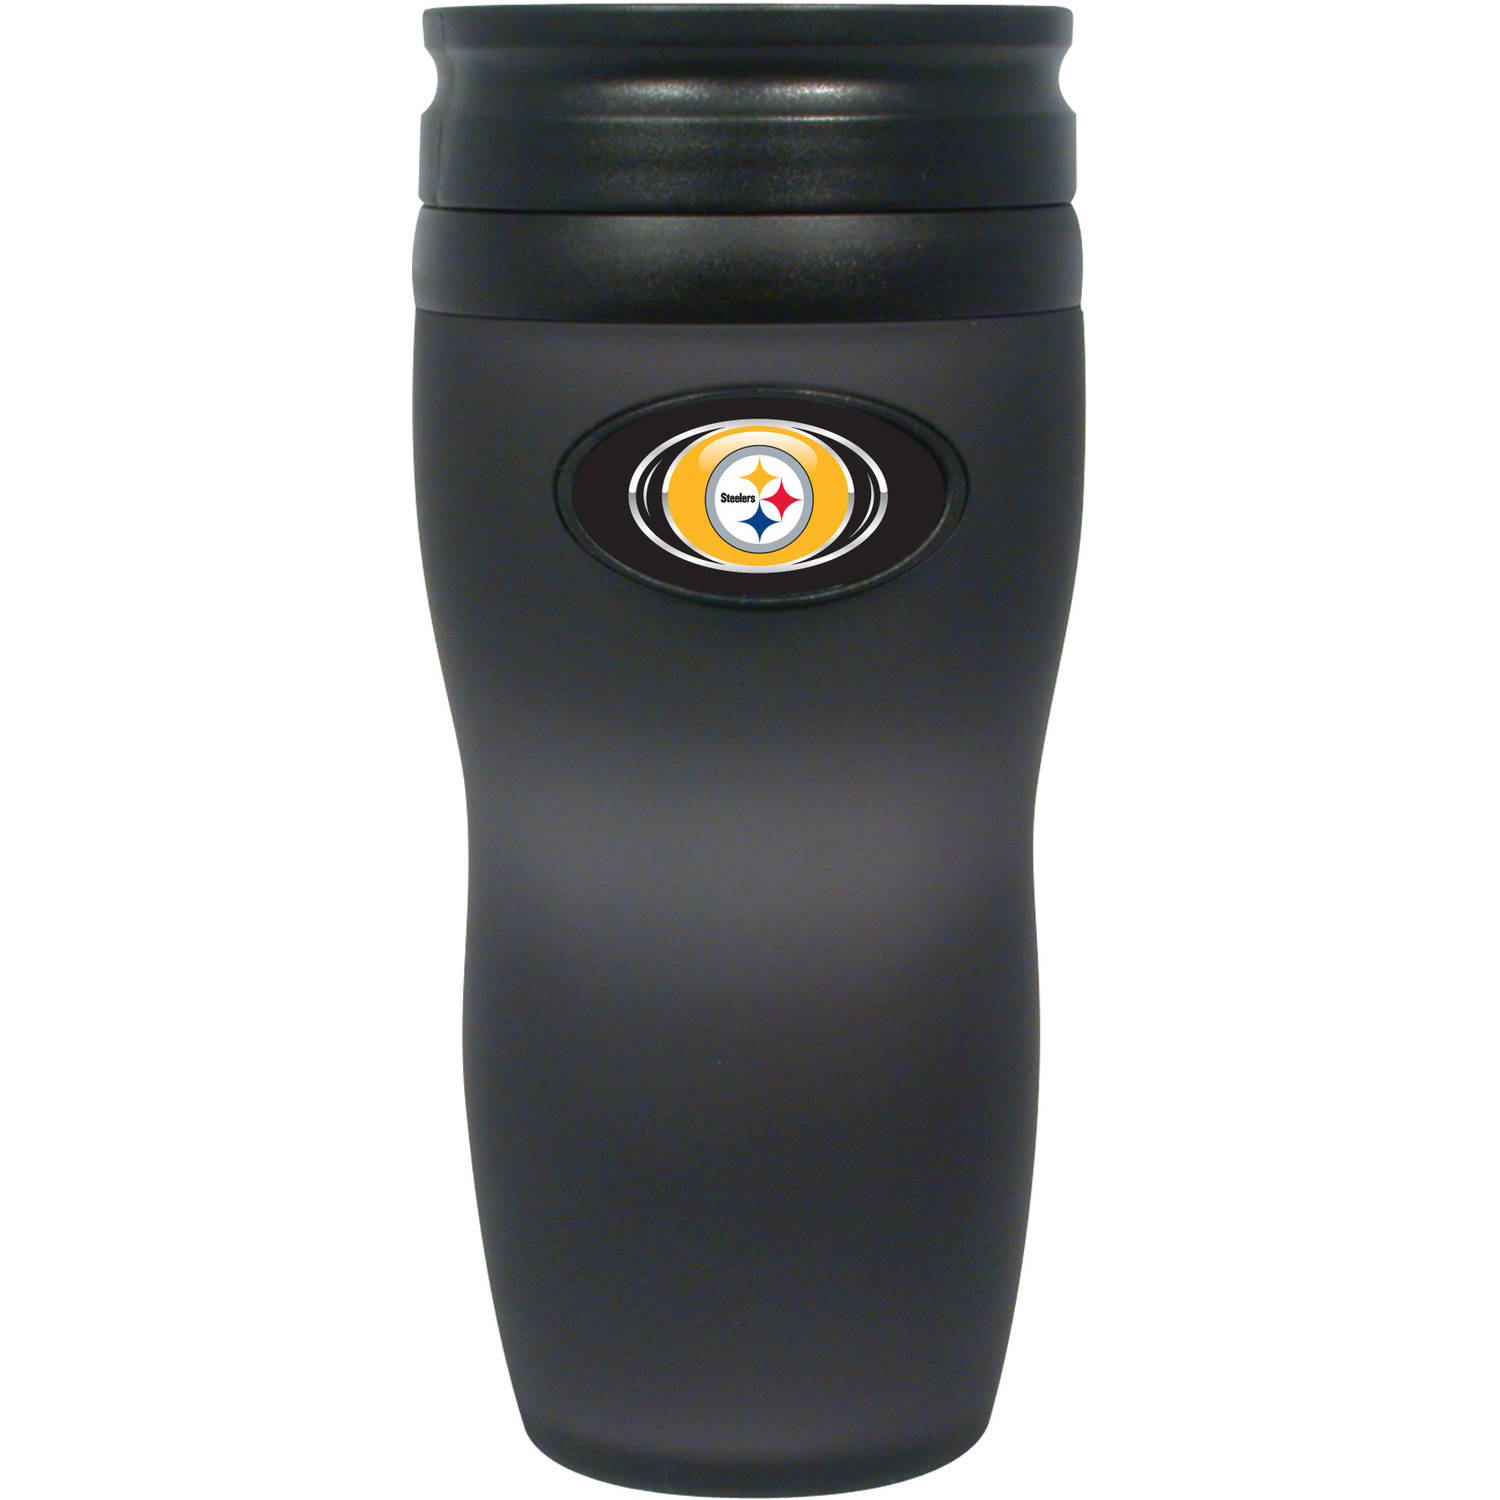 NFL Soft Touch Travel Tumbler, Pittsburgh Steelers